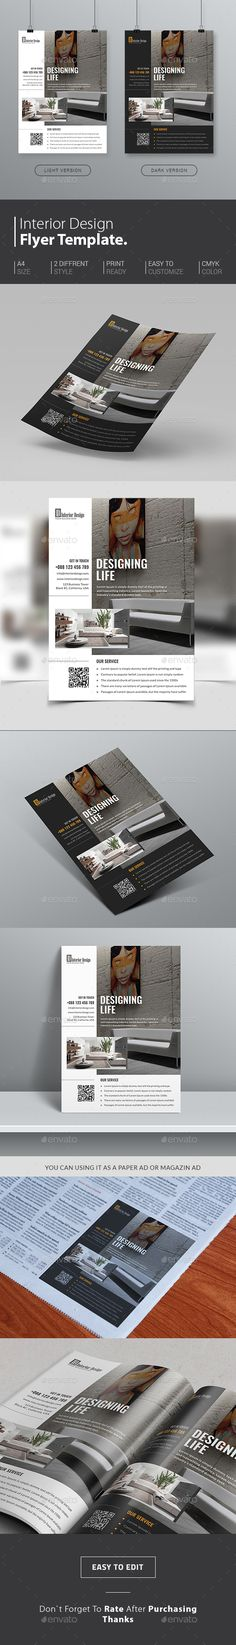 Furniture and Interior Catalog Brochure Template PSD #design - interior design brochure template